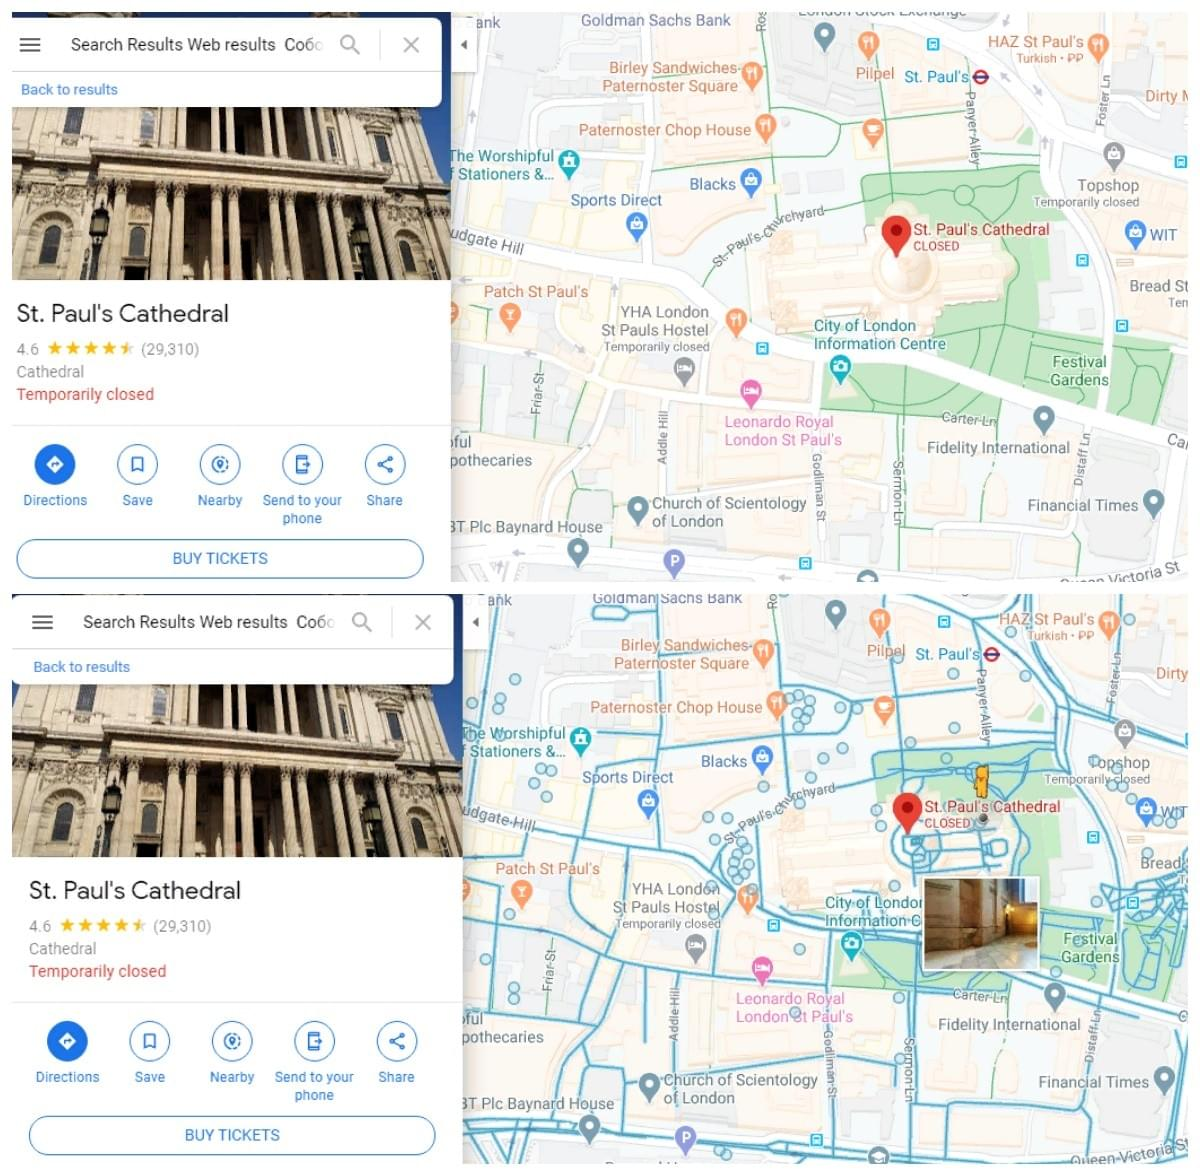 The example of how to use the panorama view in Google maps from the computer